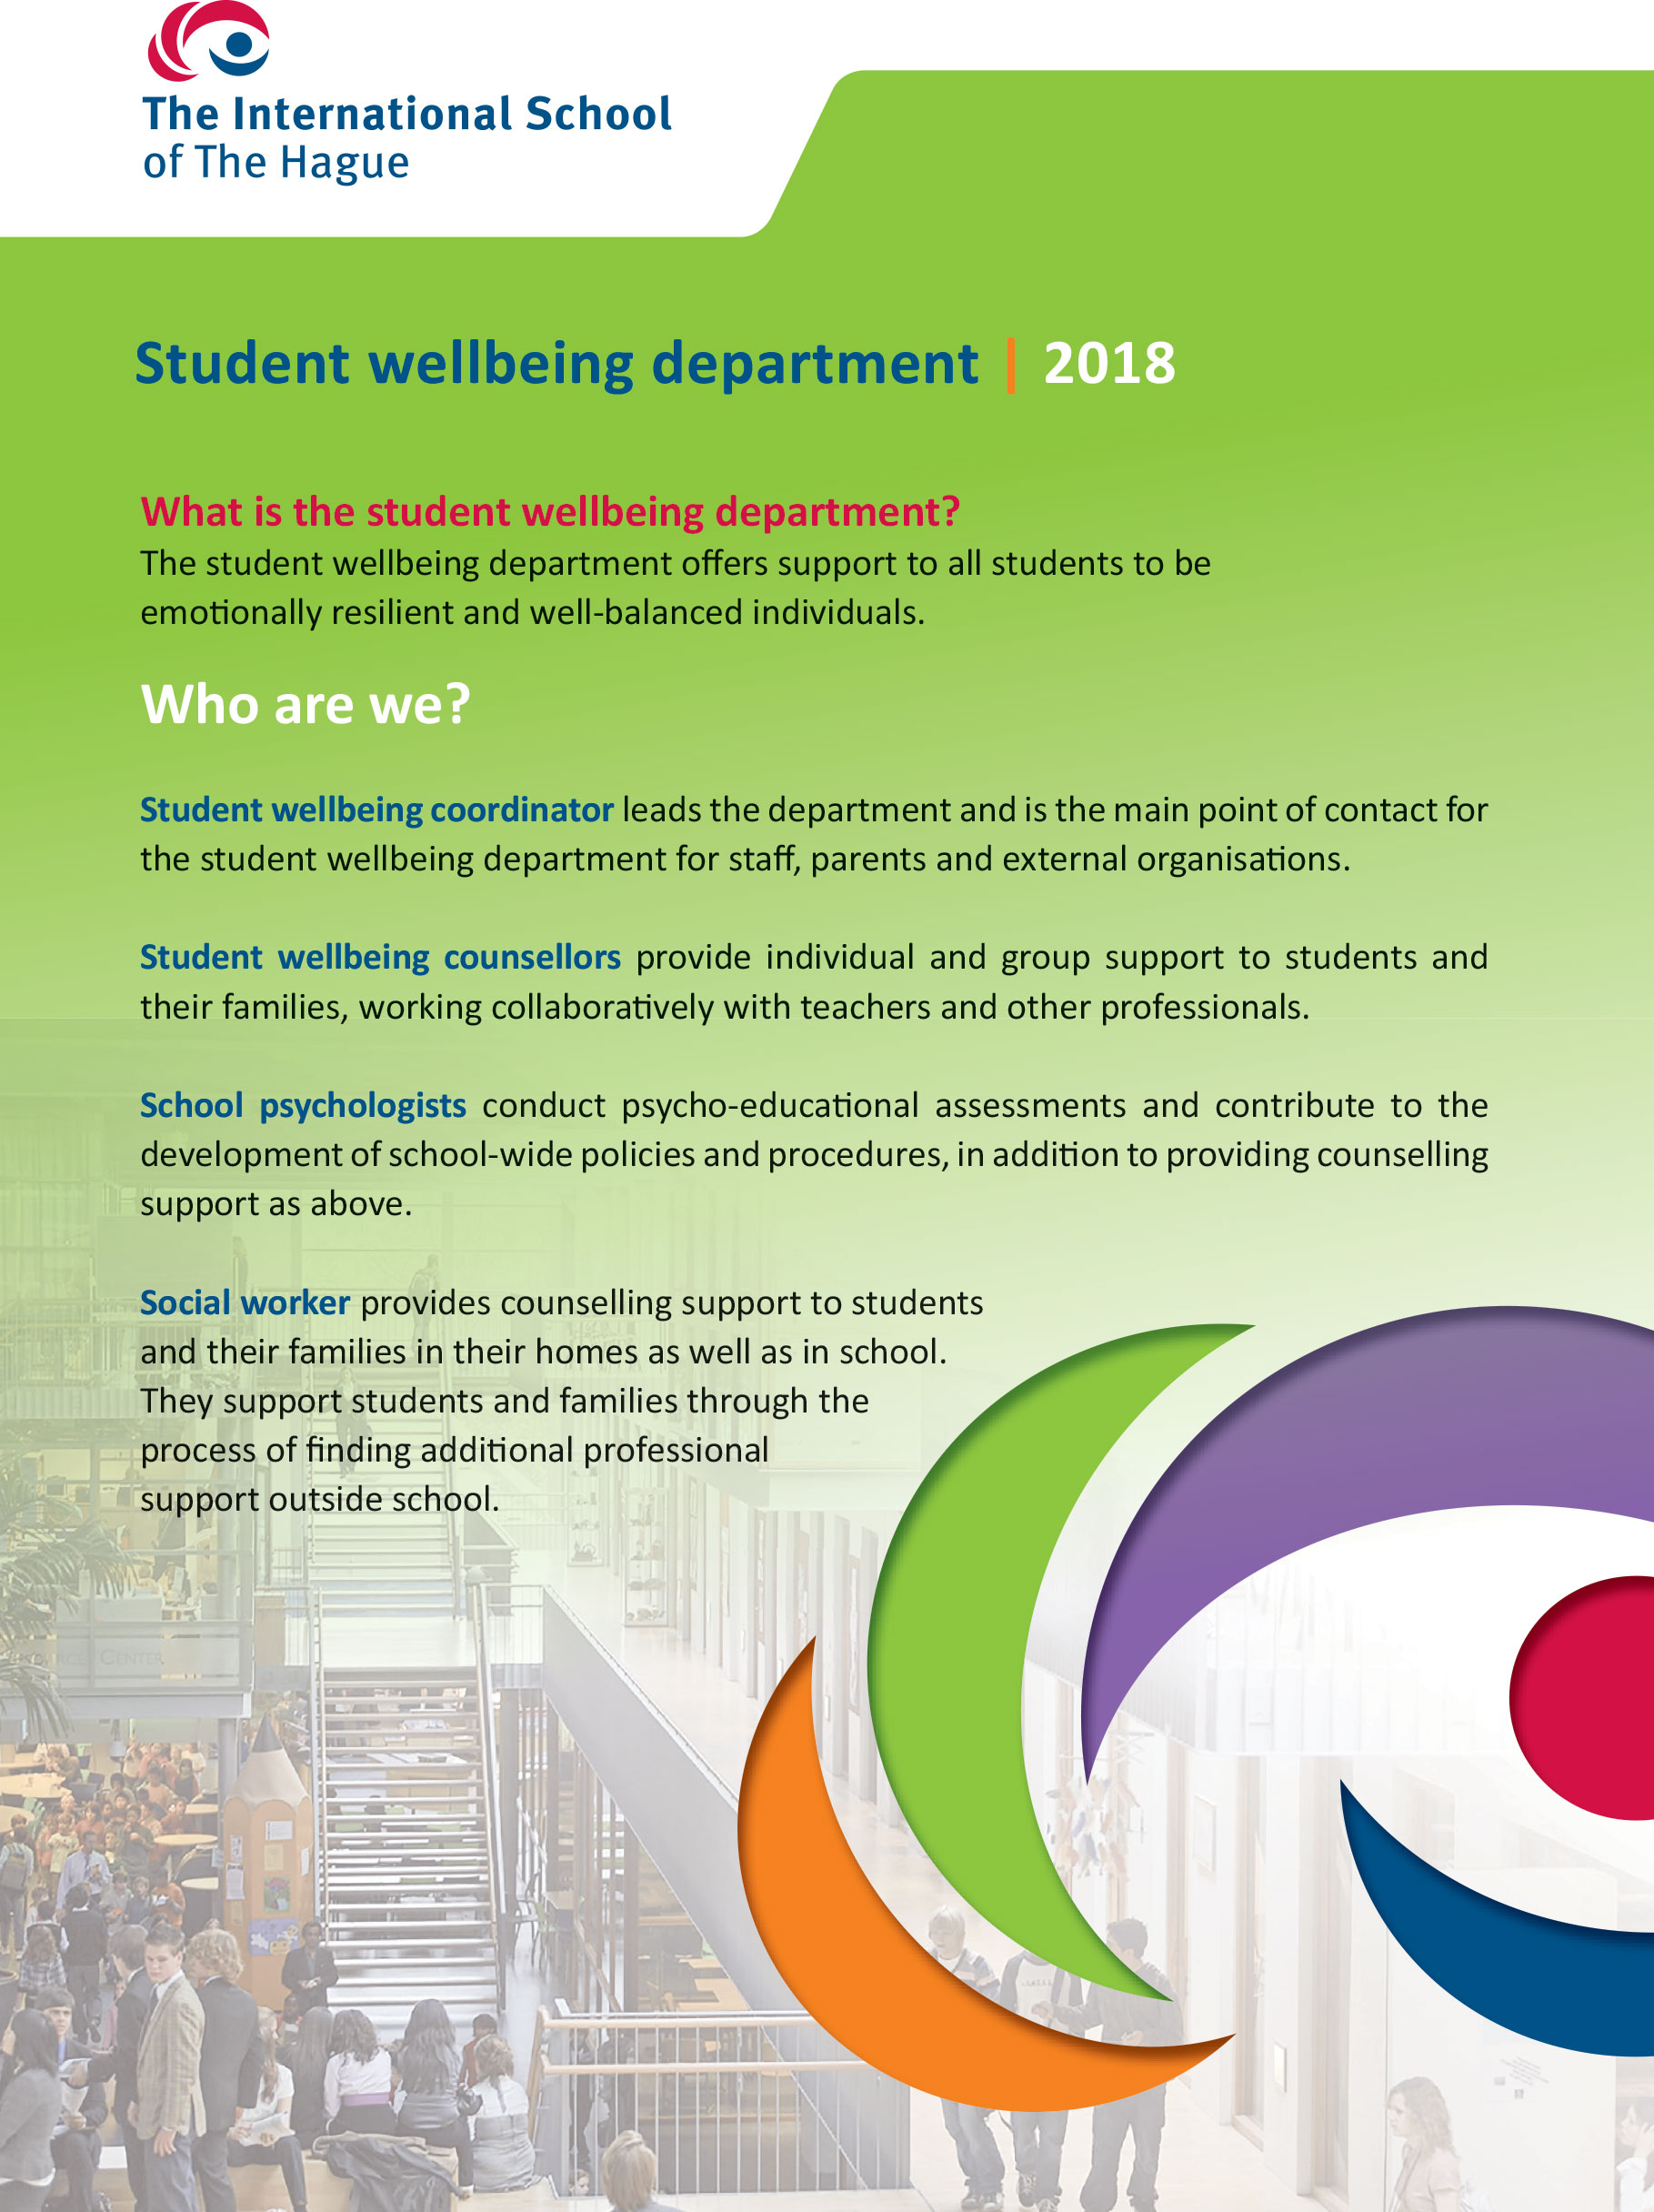 text about the Student Wellbeing department